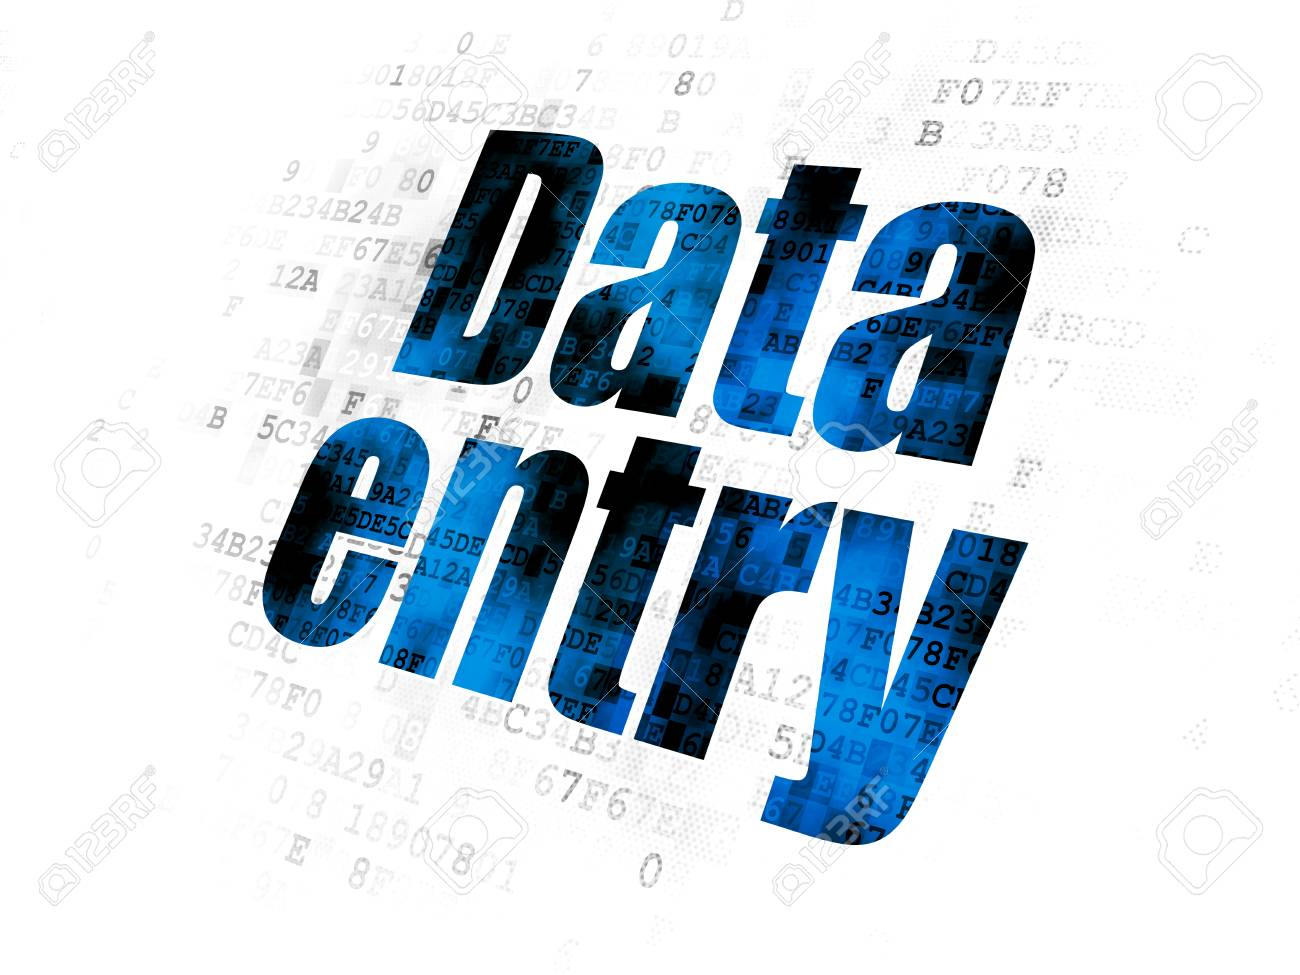 Data Entry Services- MS Office Tools,  Typing,  Writing,  Editing Quality Services